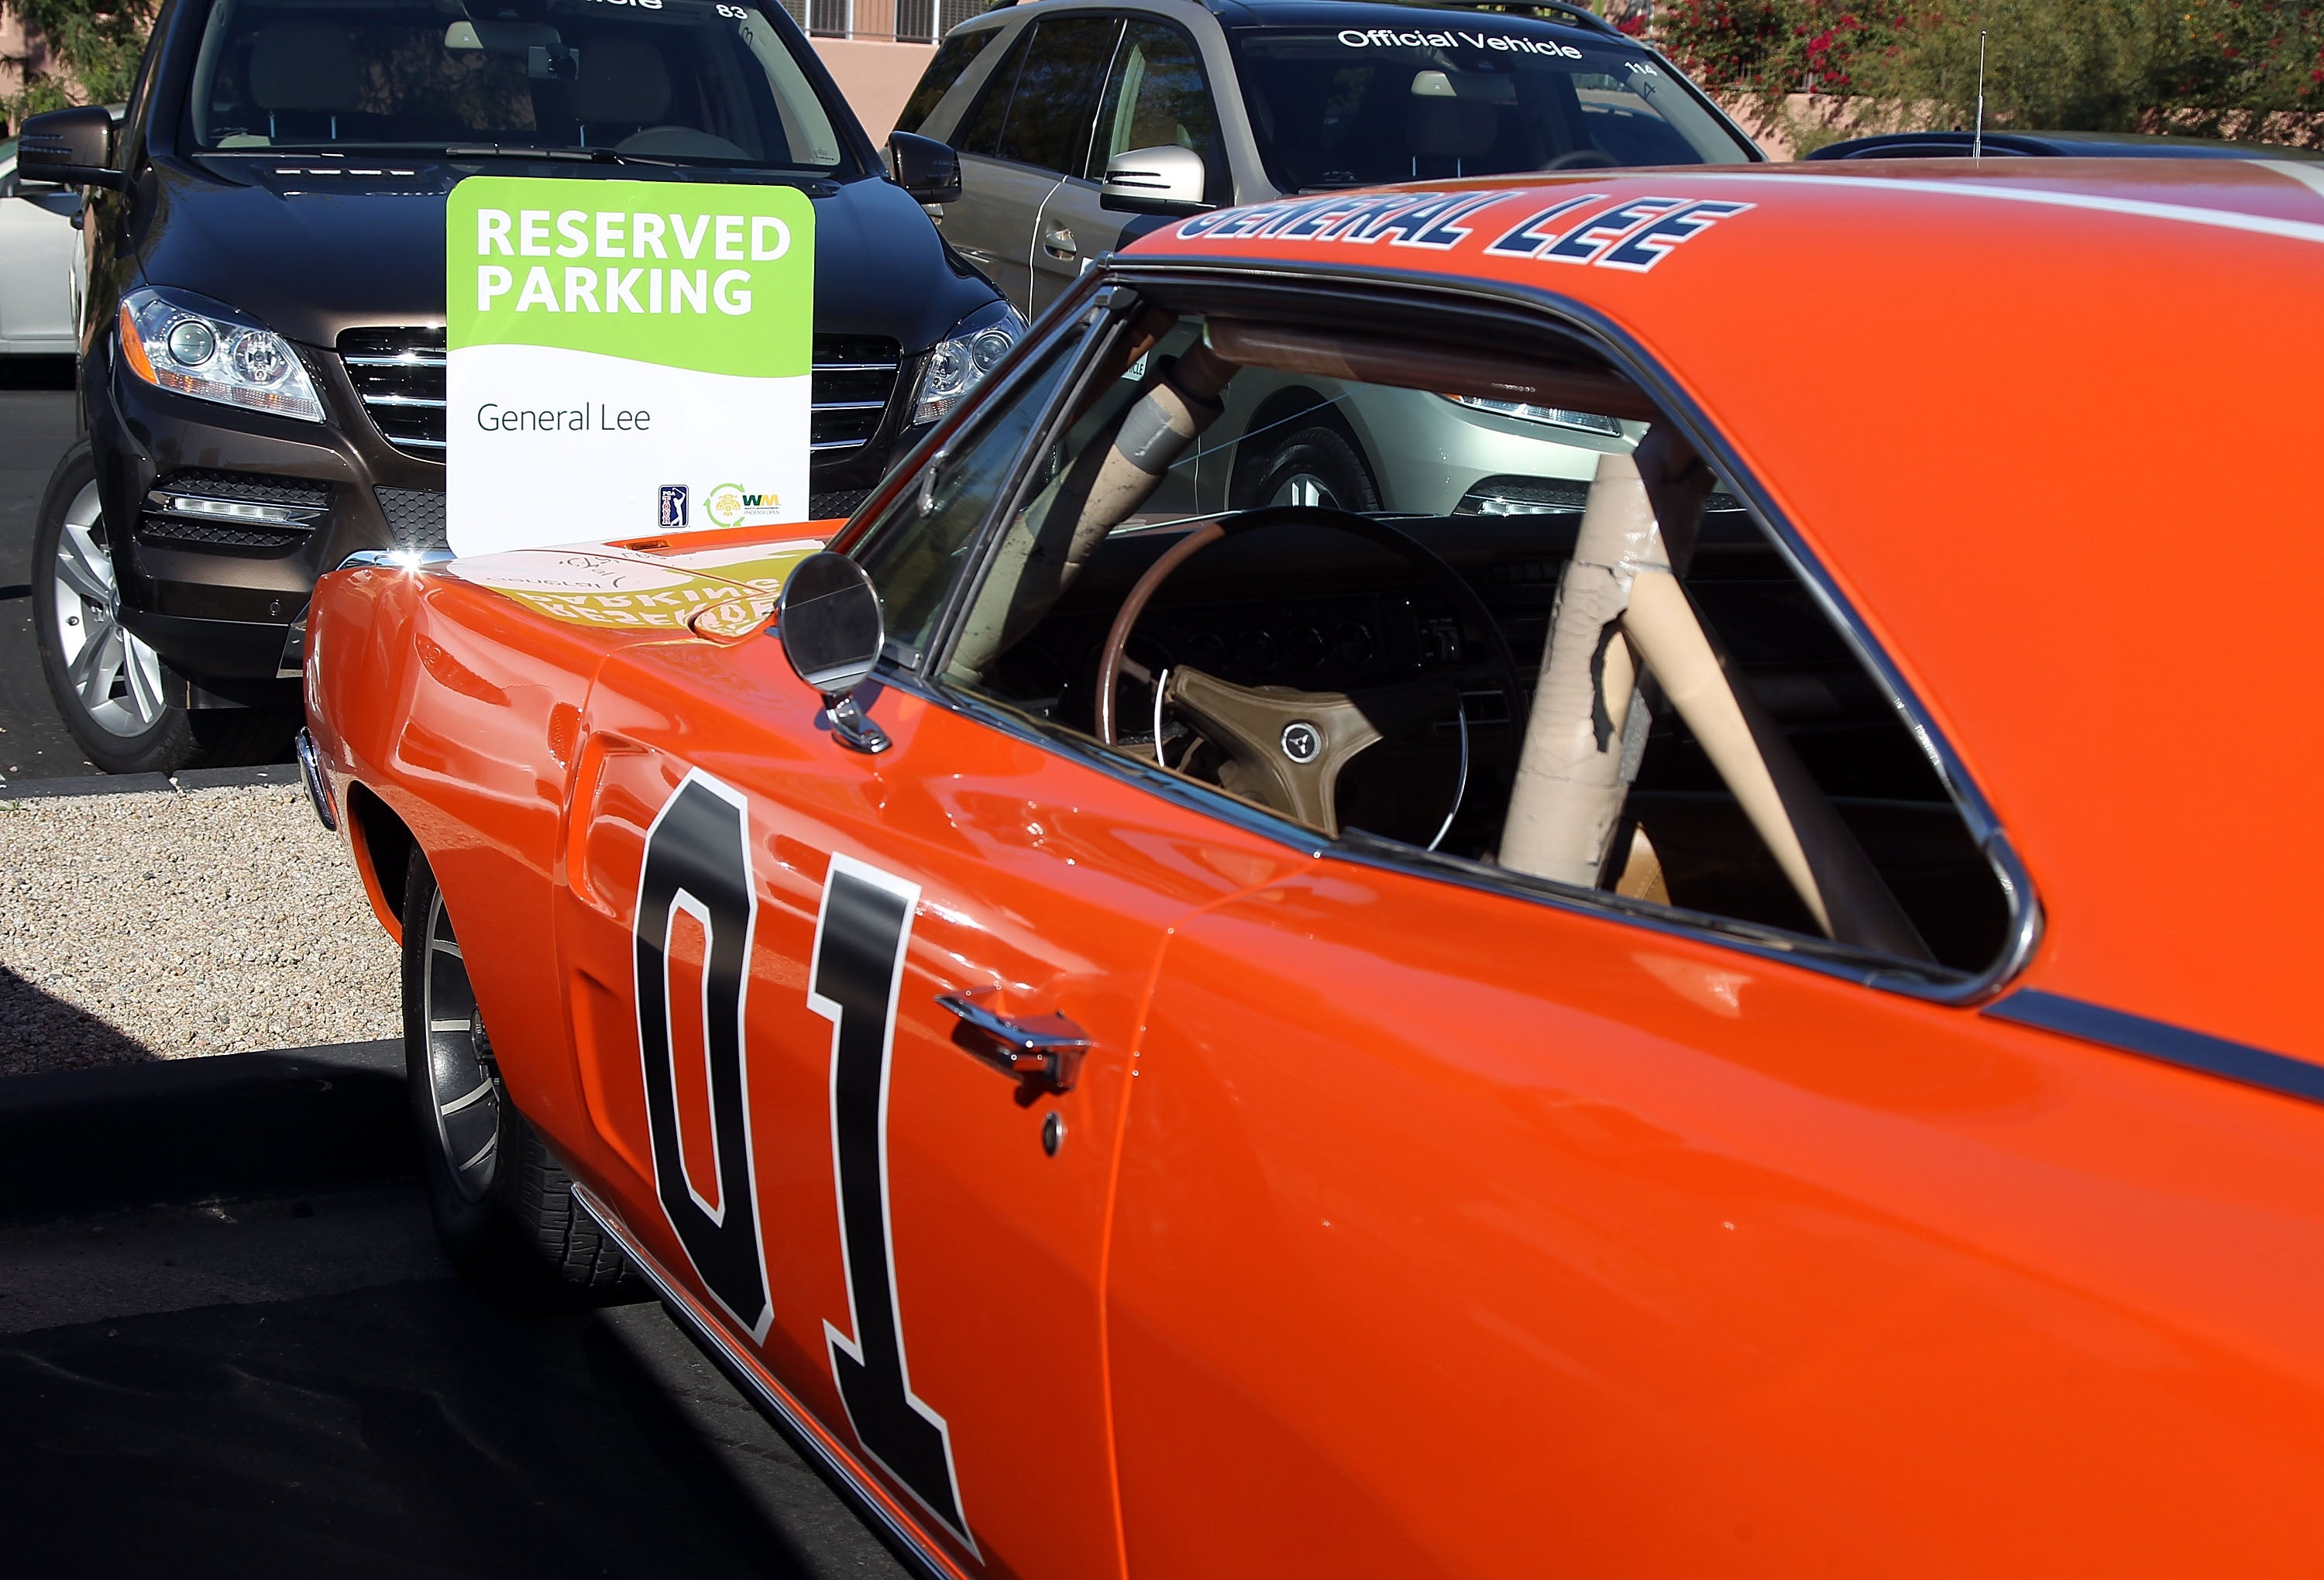 Bubba Watsons General Lee Signed By Bo Duke At BarrettJackson - Scottsdale car show today